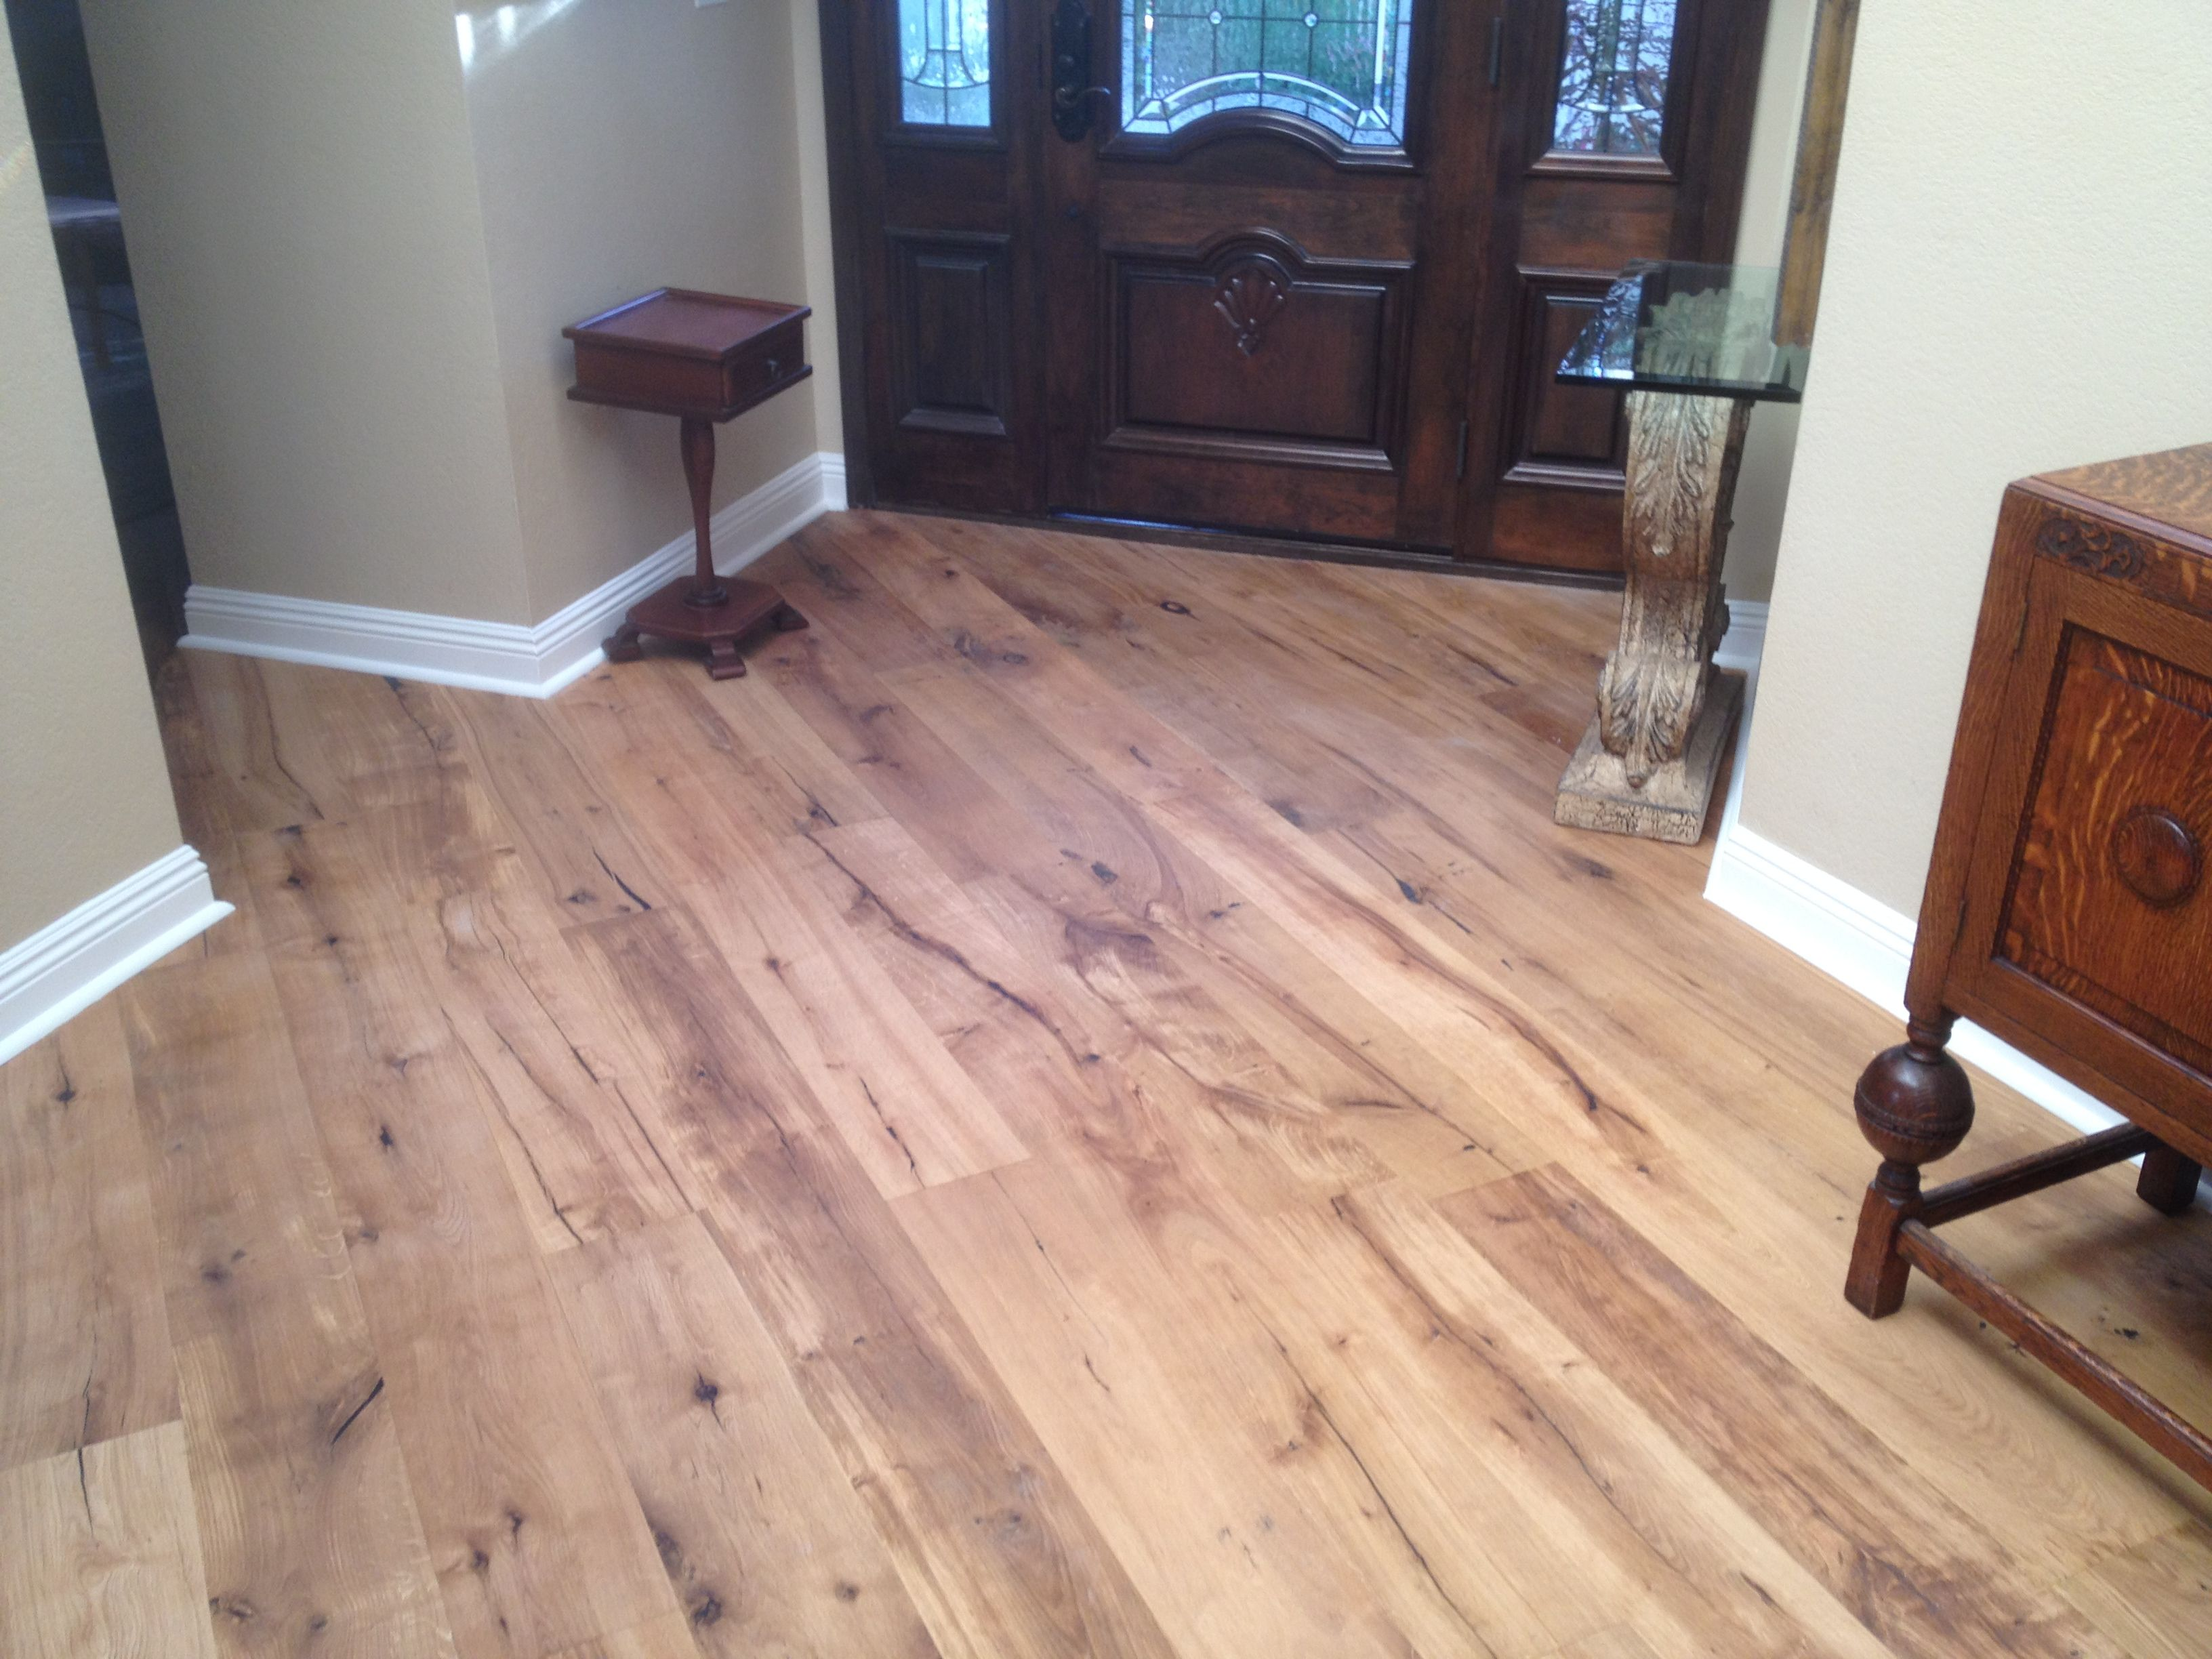 Ceramic Tile That Looks Like Hardwood Floor: Best Ceramic Tile Like ...